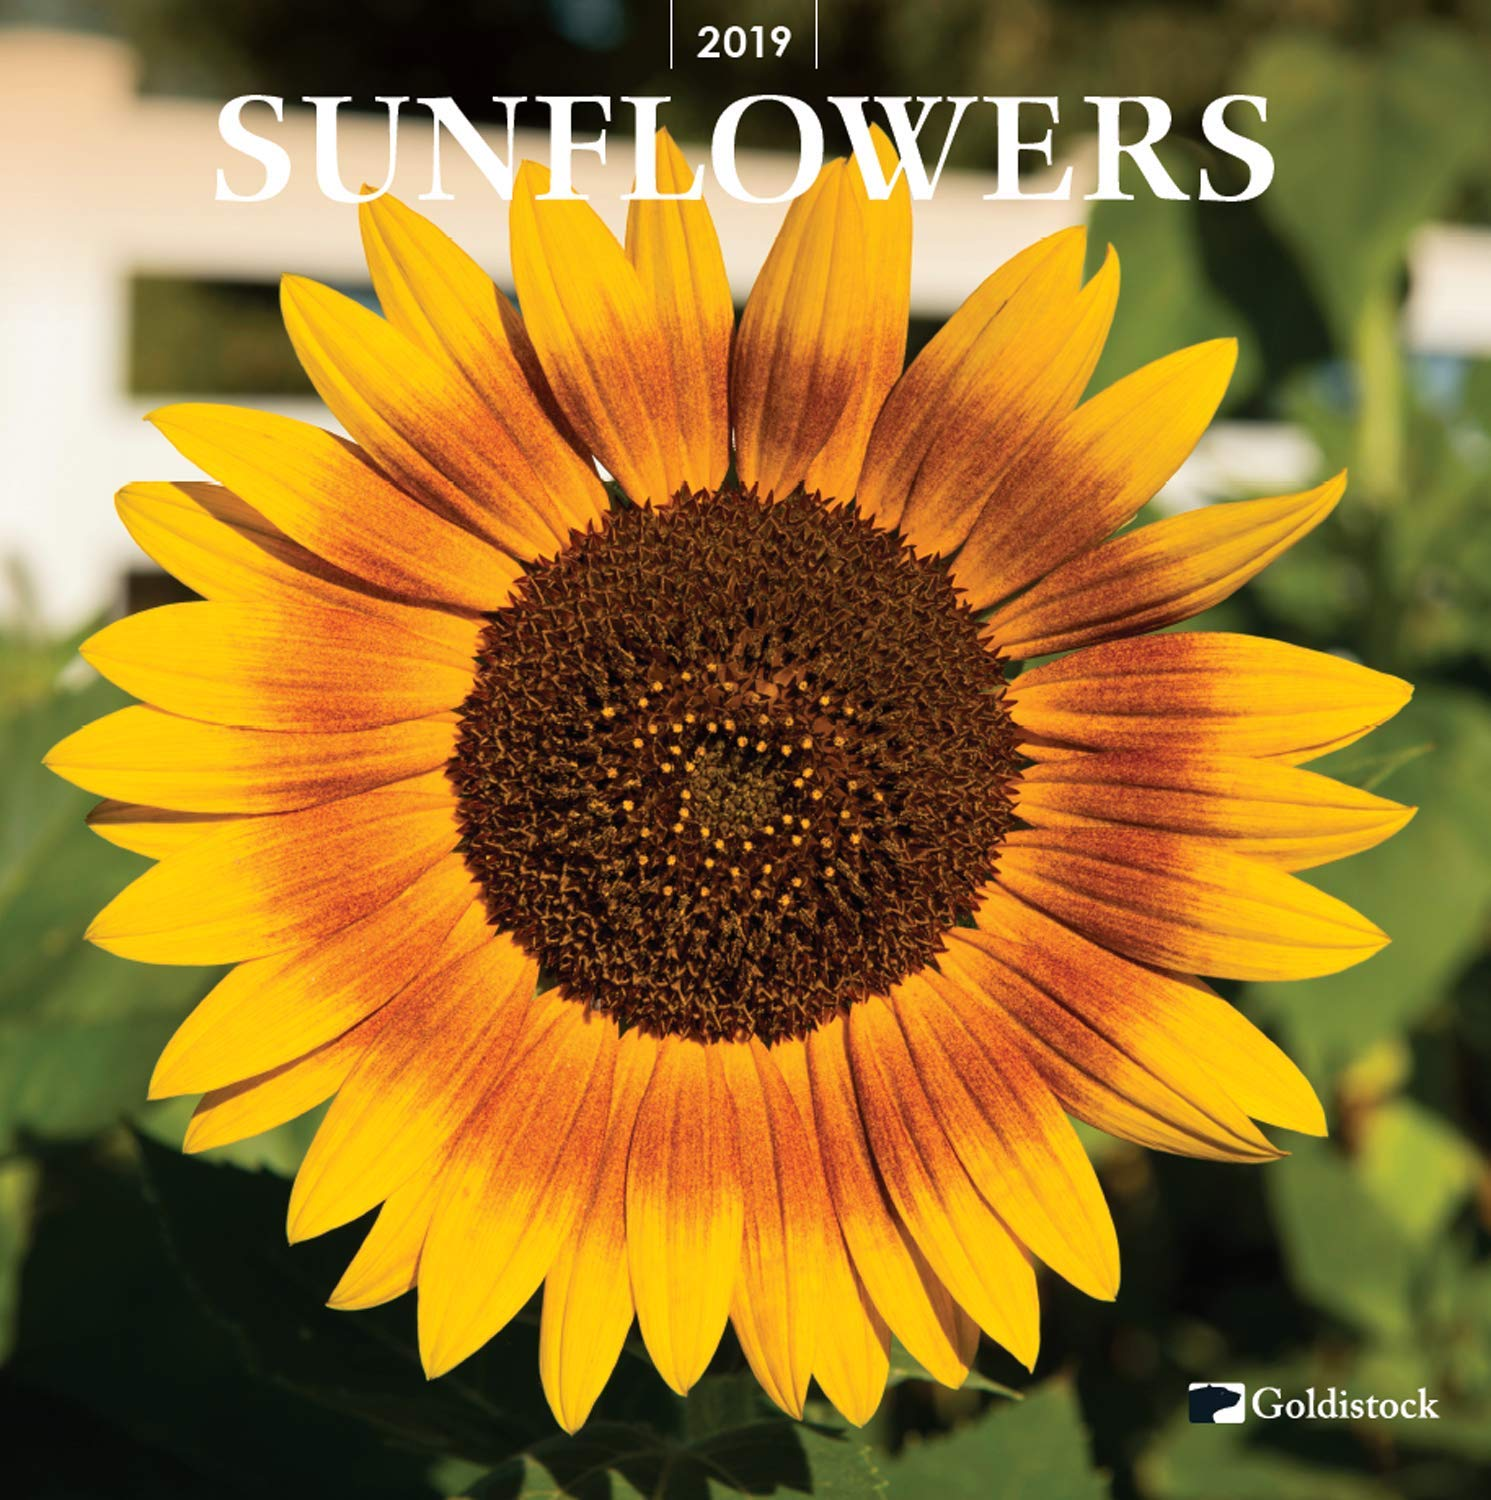 Goldistock -''Sunflowers'' Eco-Friendly 2019 Large Wall Calendar - 12'' x 24'' (Open) - Thick & Sturdy Paper - Will Brighten Your Day